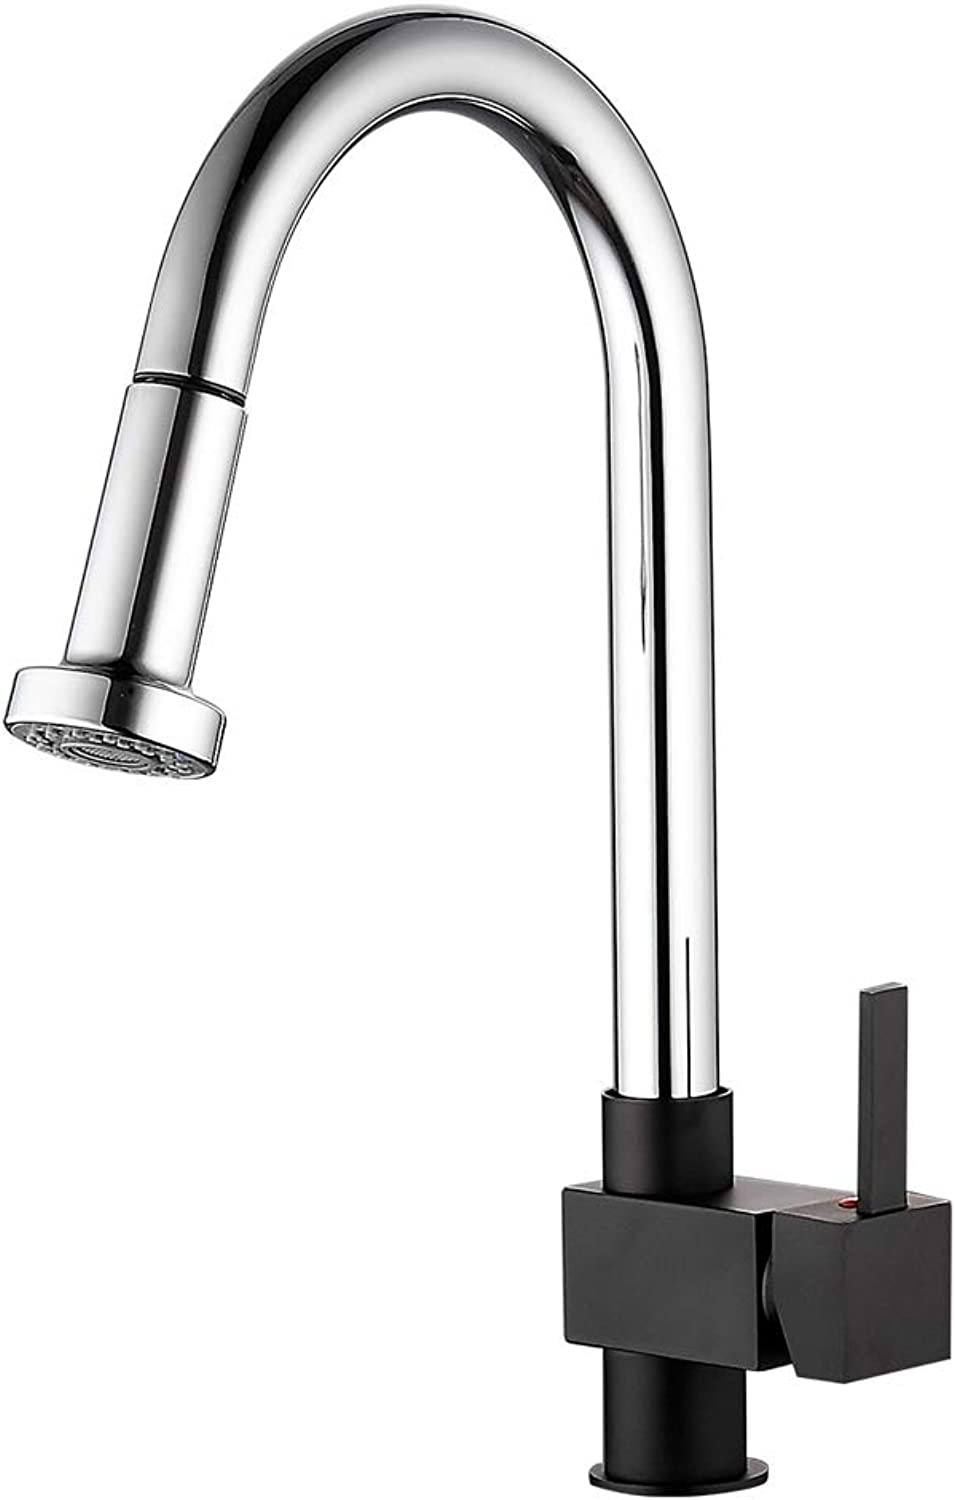 Kitchen Mixer Tap,Single Lever Swivel Spout Modern Kitchen Sink Basin Mixer Tap